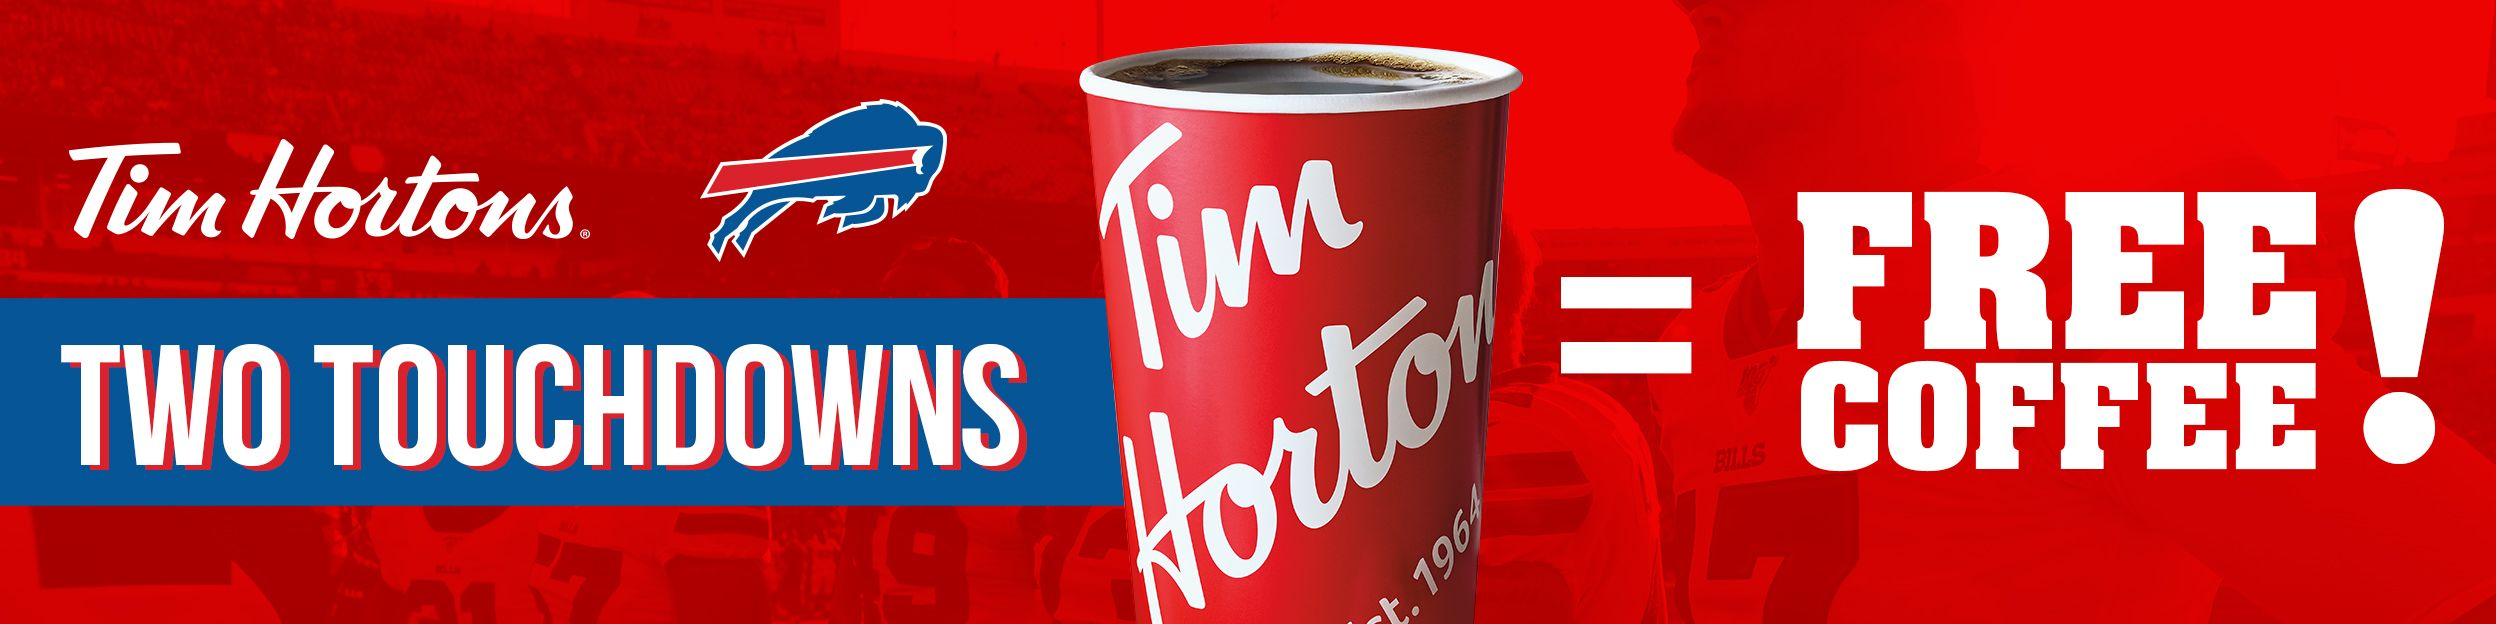 BBSP-02311_-_Header_Graphic_for_Tim_Hortons_PromotionHeader